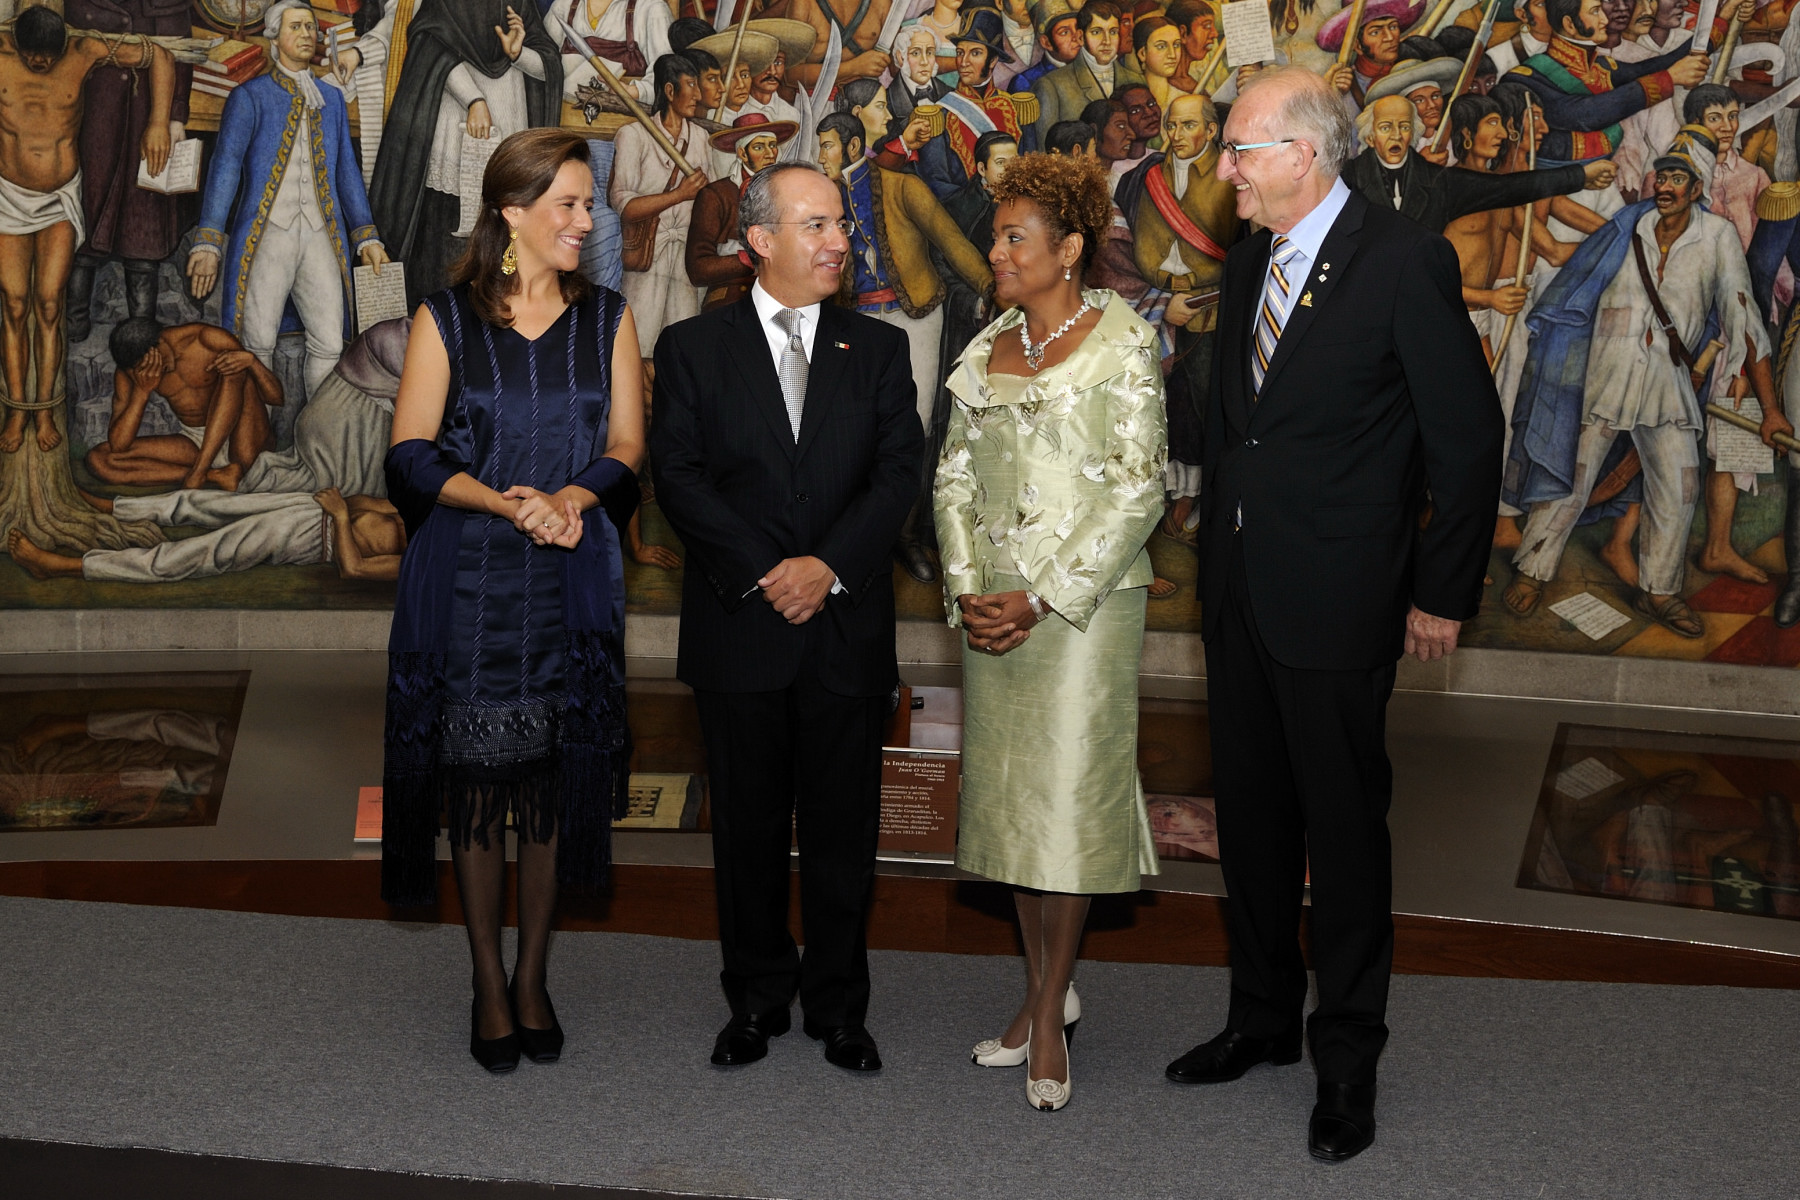 Their Excellencies the Right Honourable Michaëlle Jean, Governor General of Canada, and her husband Jean-Daniel Lafond were welcomed by His Excellency Felipe Calderón Hinojosa, President of the United Mexican States, and his wife, Margarita Zavala, upon their arrival at the Chapultepec Castle in Mexico City.